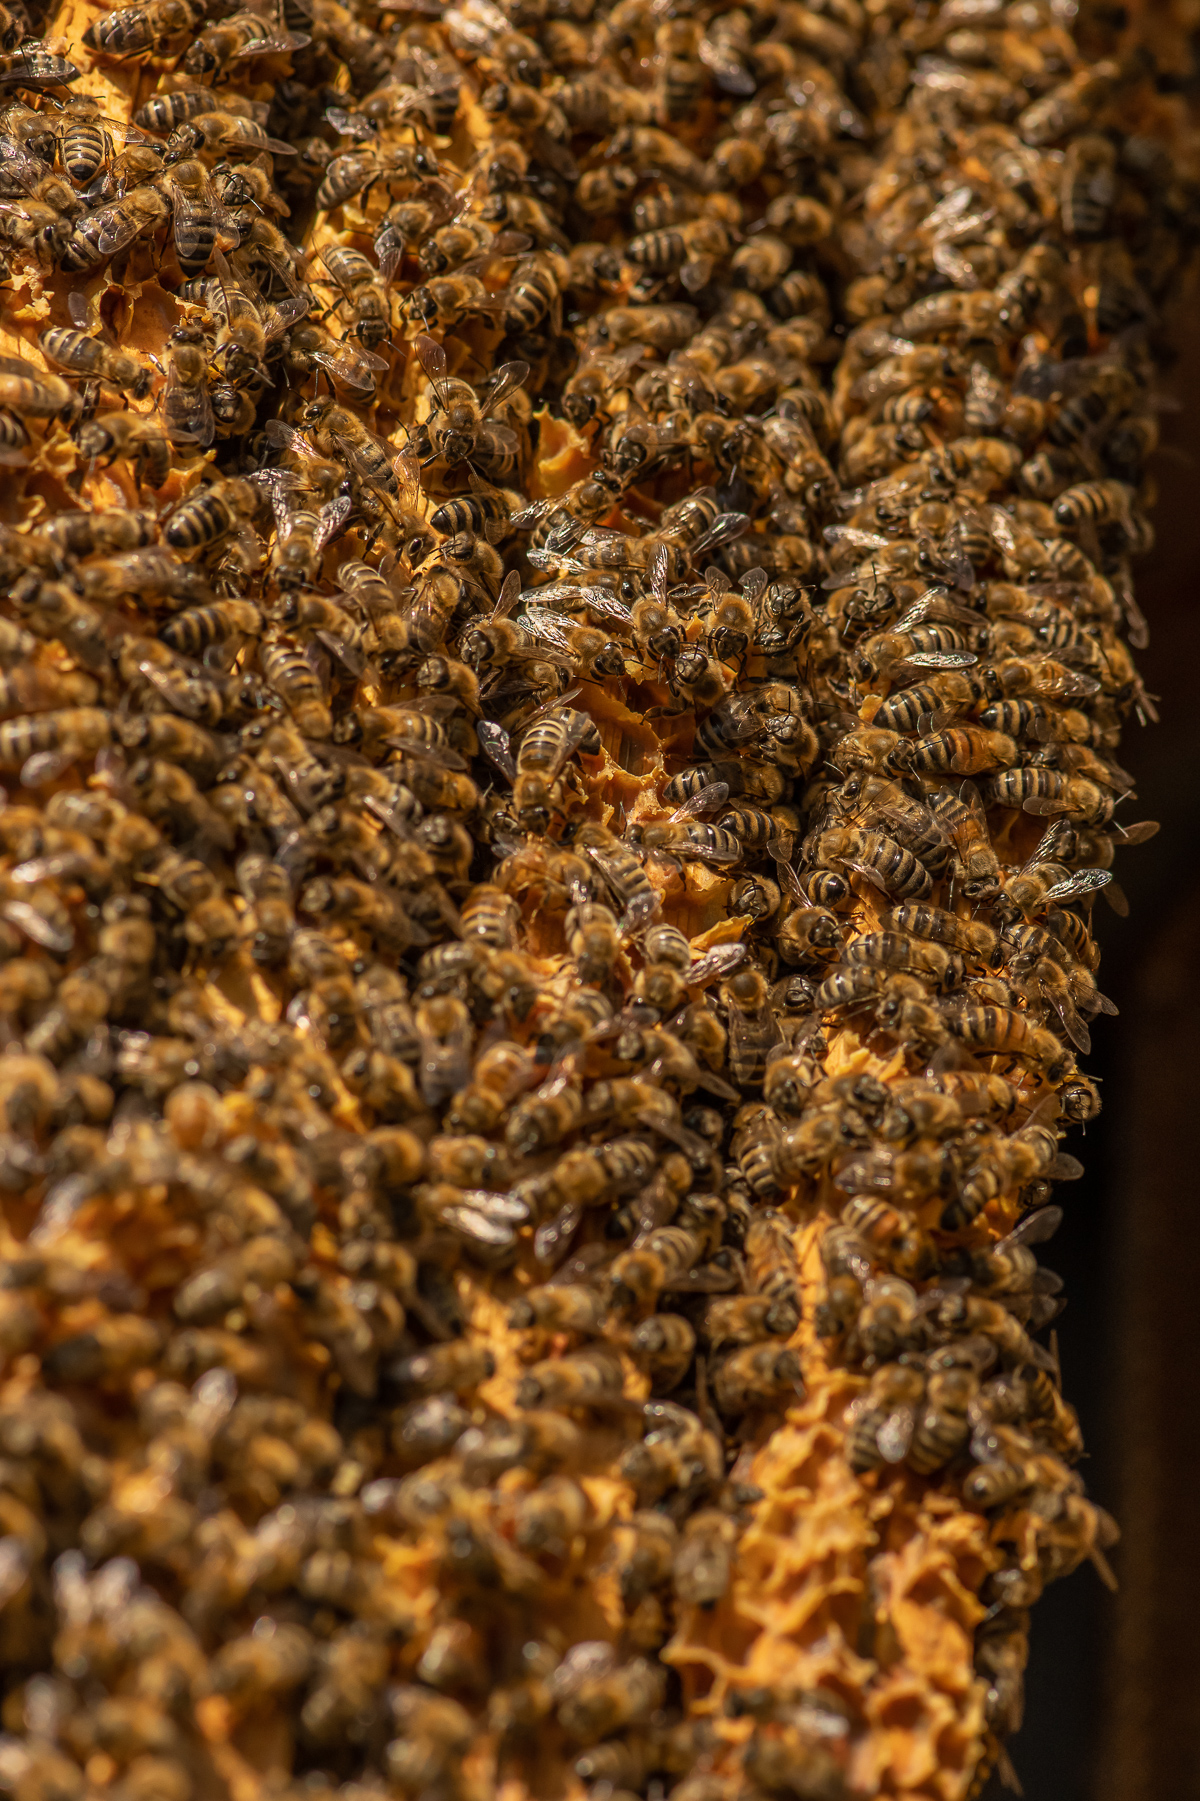 Multiplying hives and growing new colonies